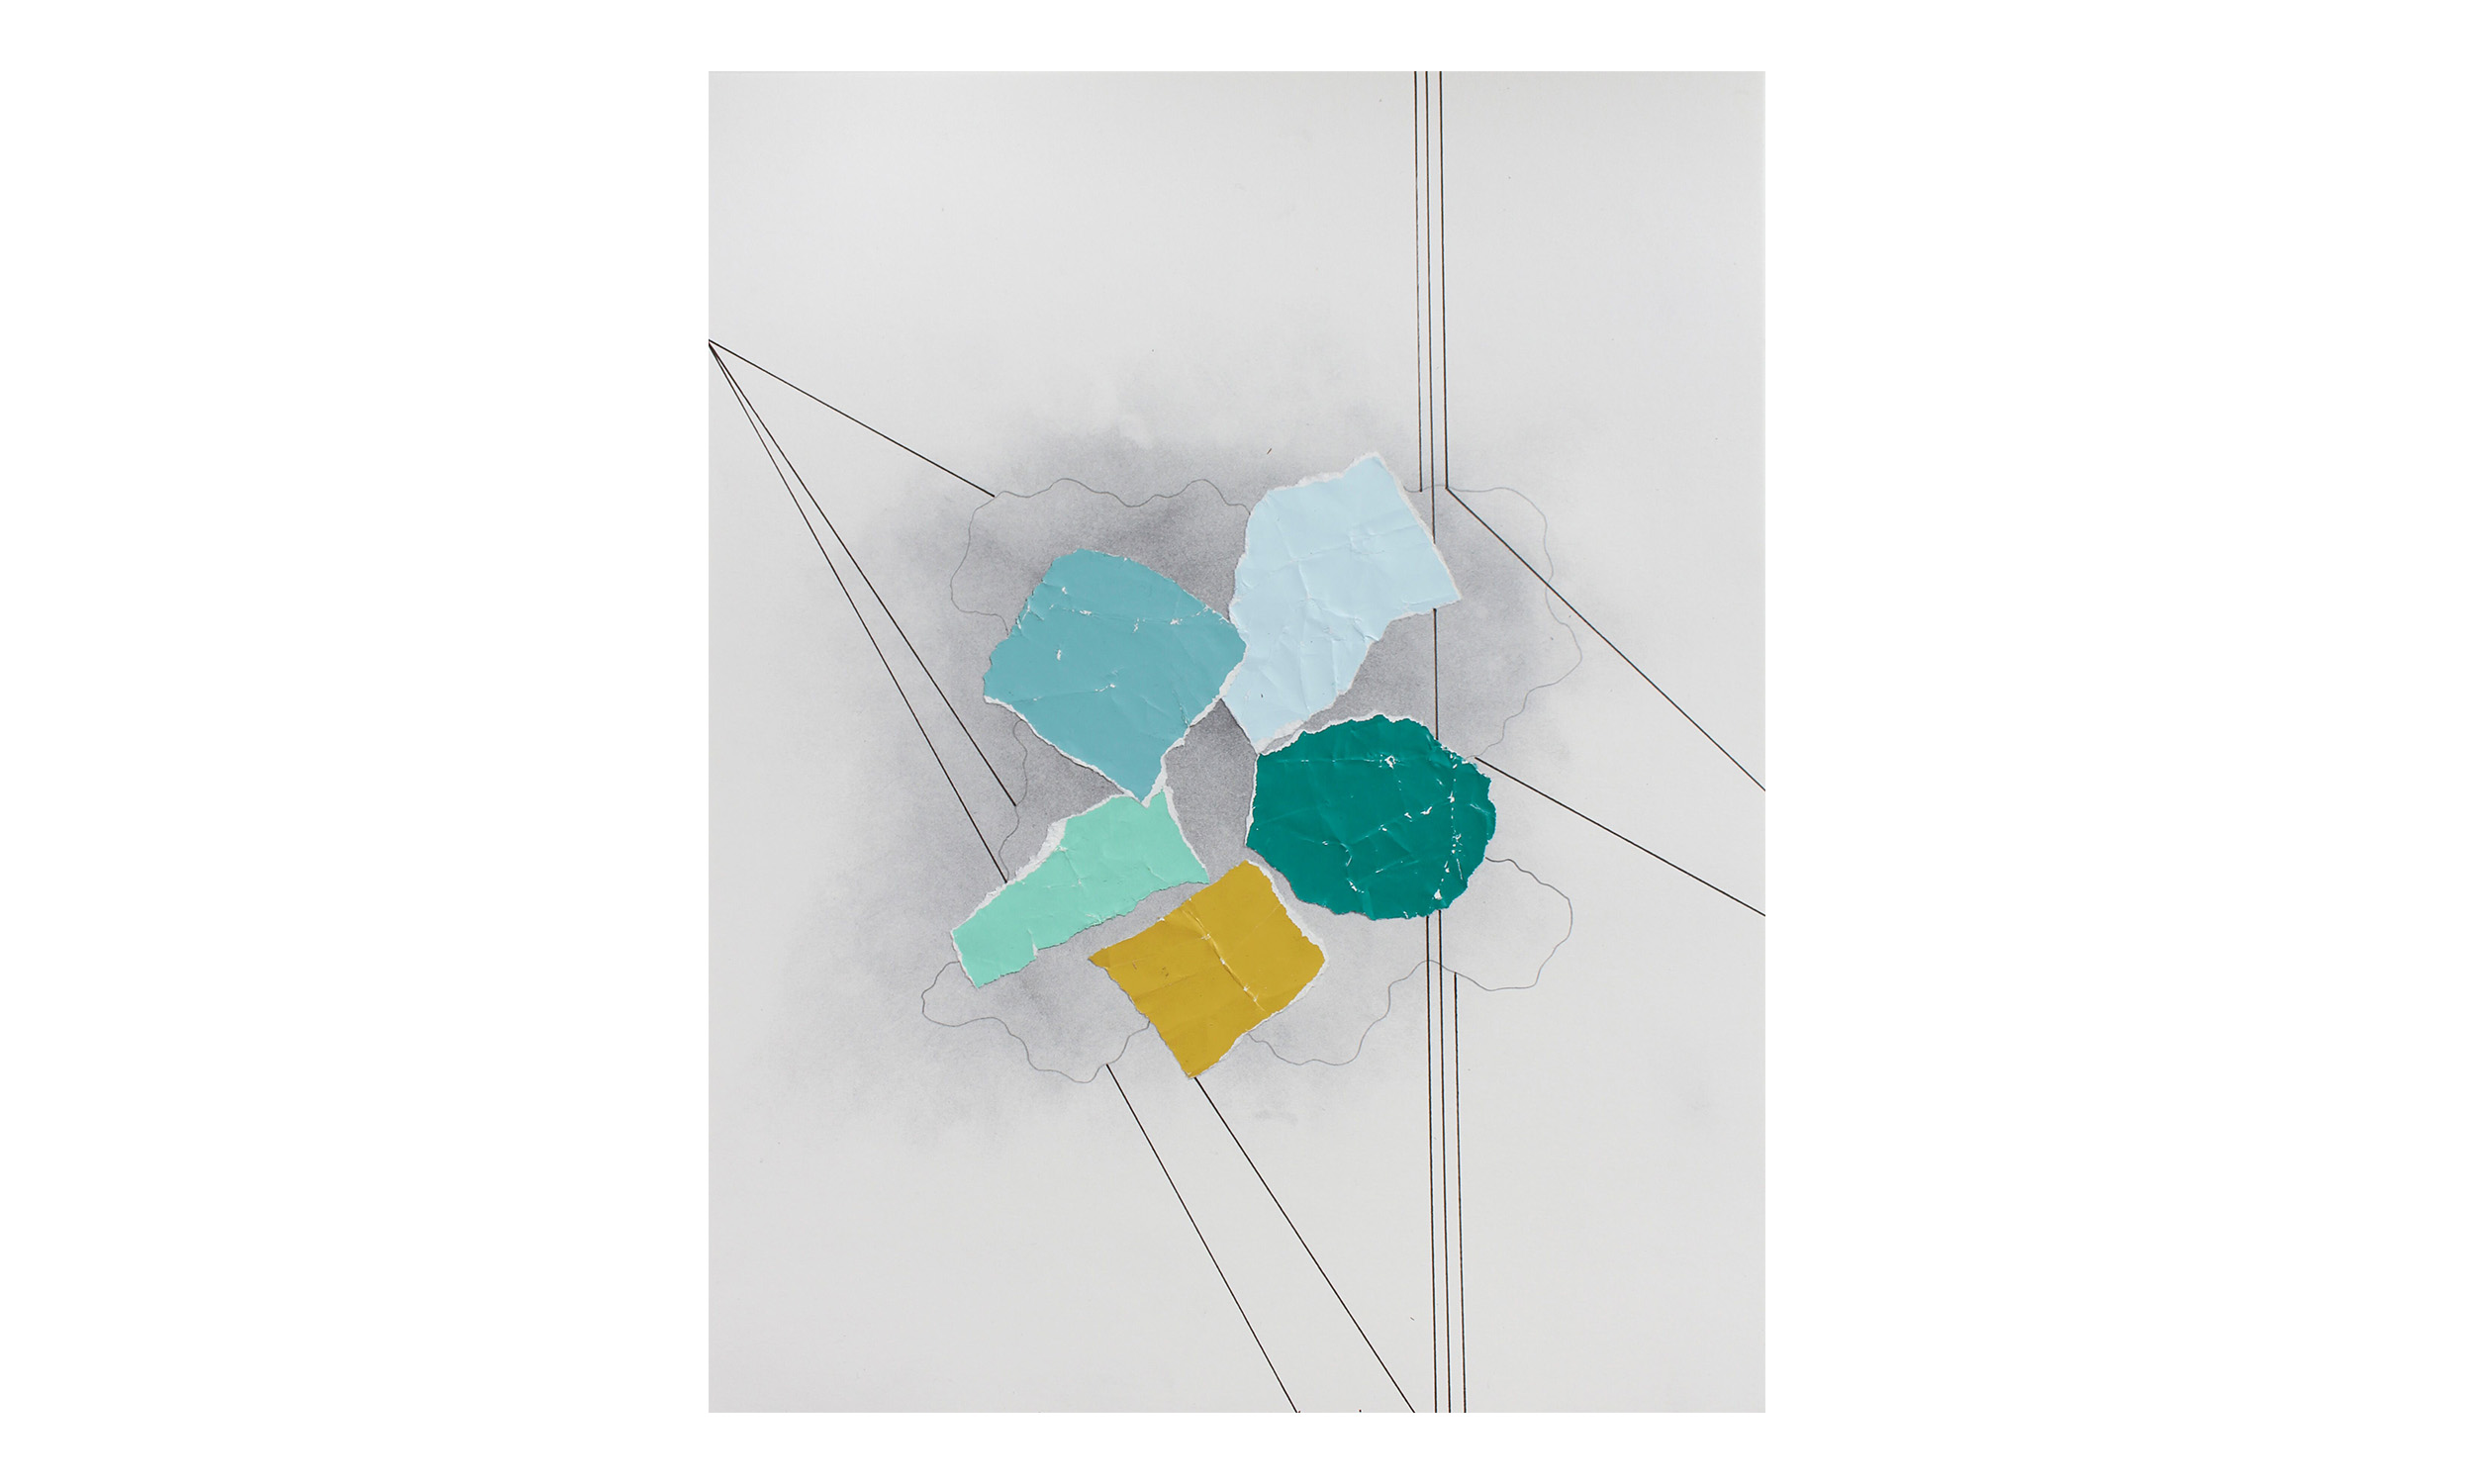 Imaginary Maps 14 , paint chips on paper, pen, pencil, powdered graphite, 11 x 14 inches, unframed, $200    Contact us for purchase